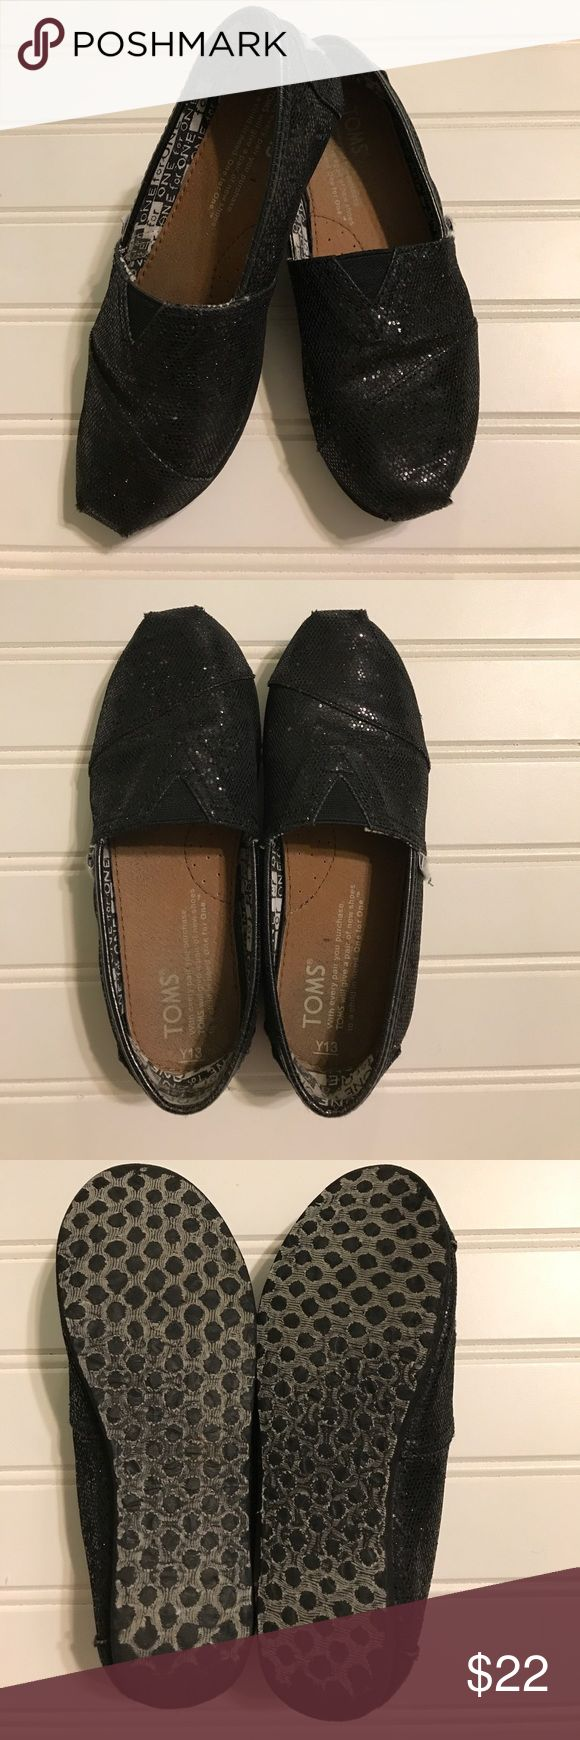 TOMS - youth size 13 Girls Black glitter TOMS - youth size 13. EUC. Worn only a couple times before daughter had a growth spurt. TOMS Shoes